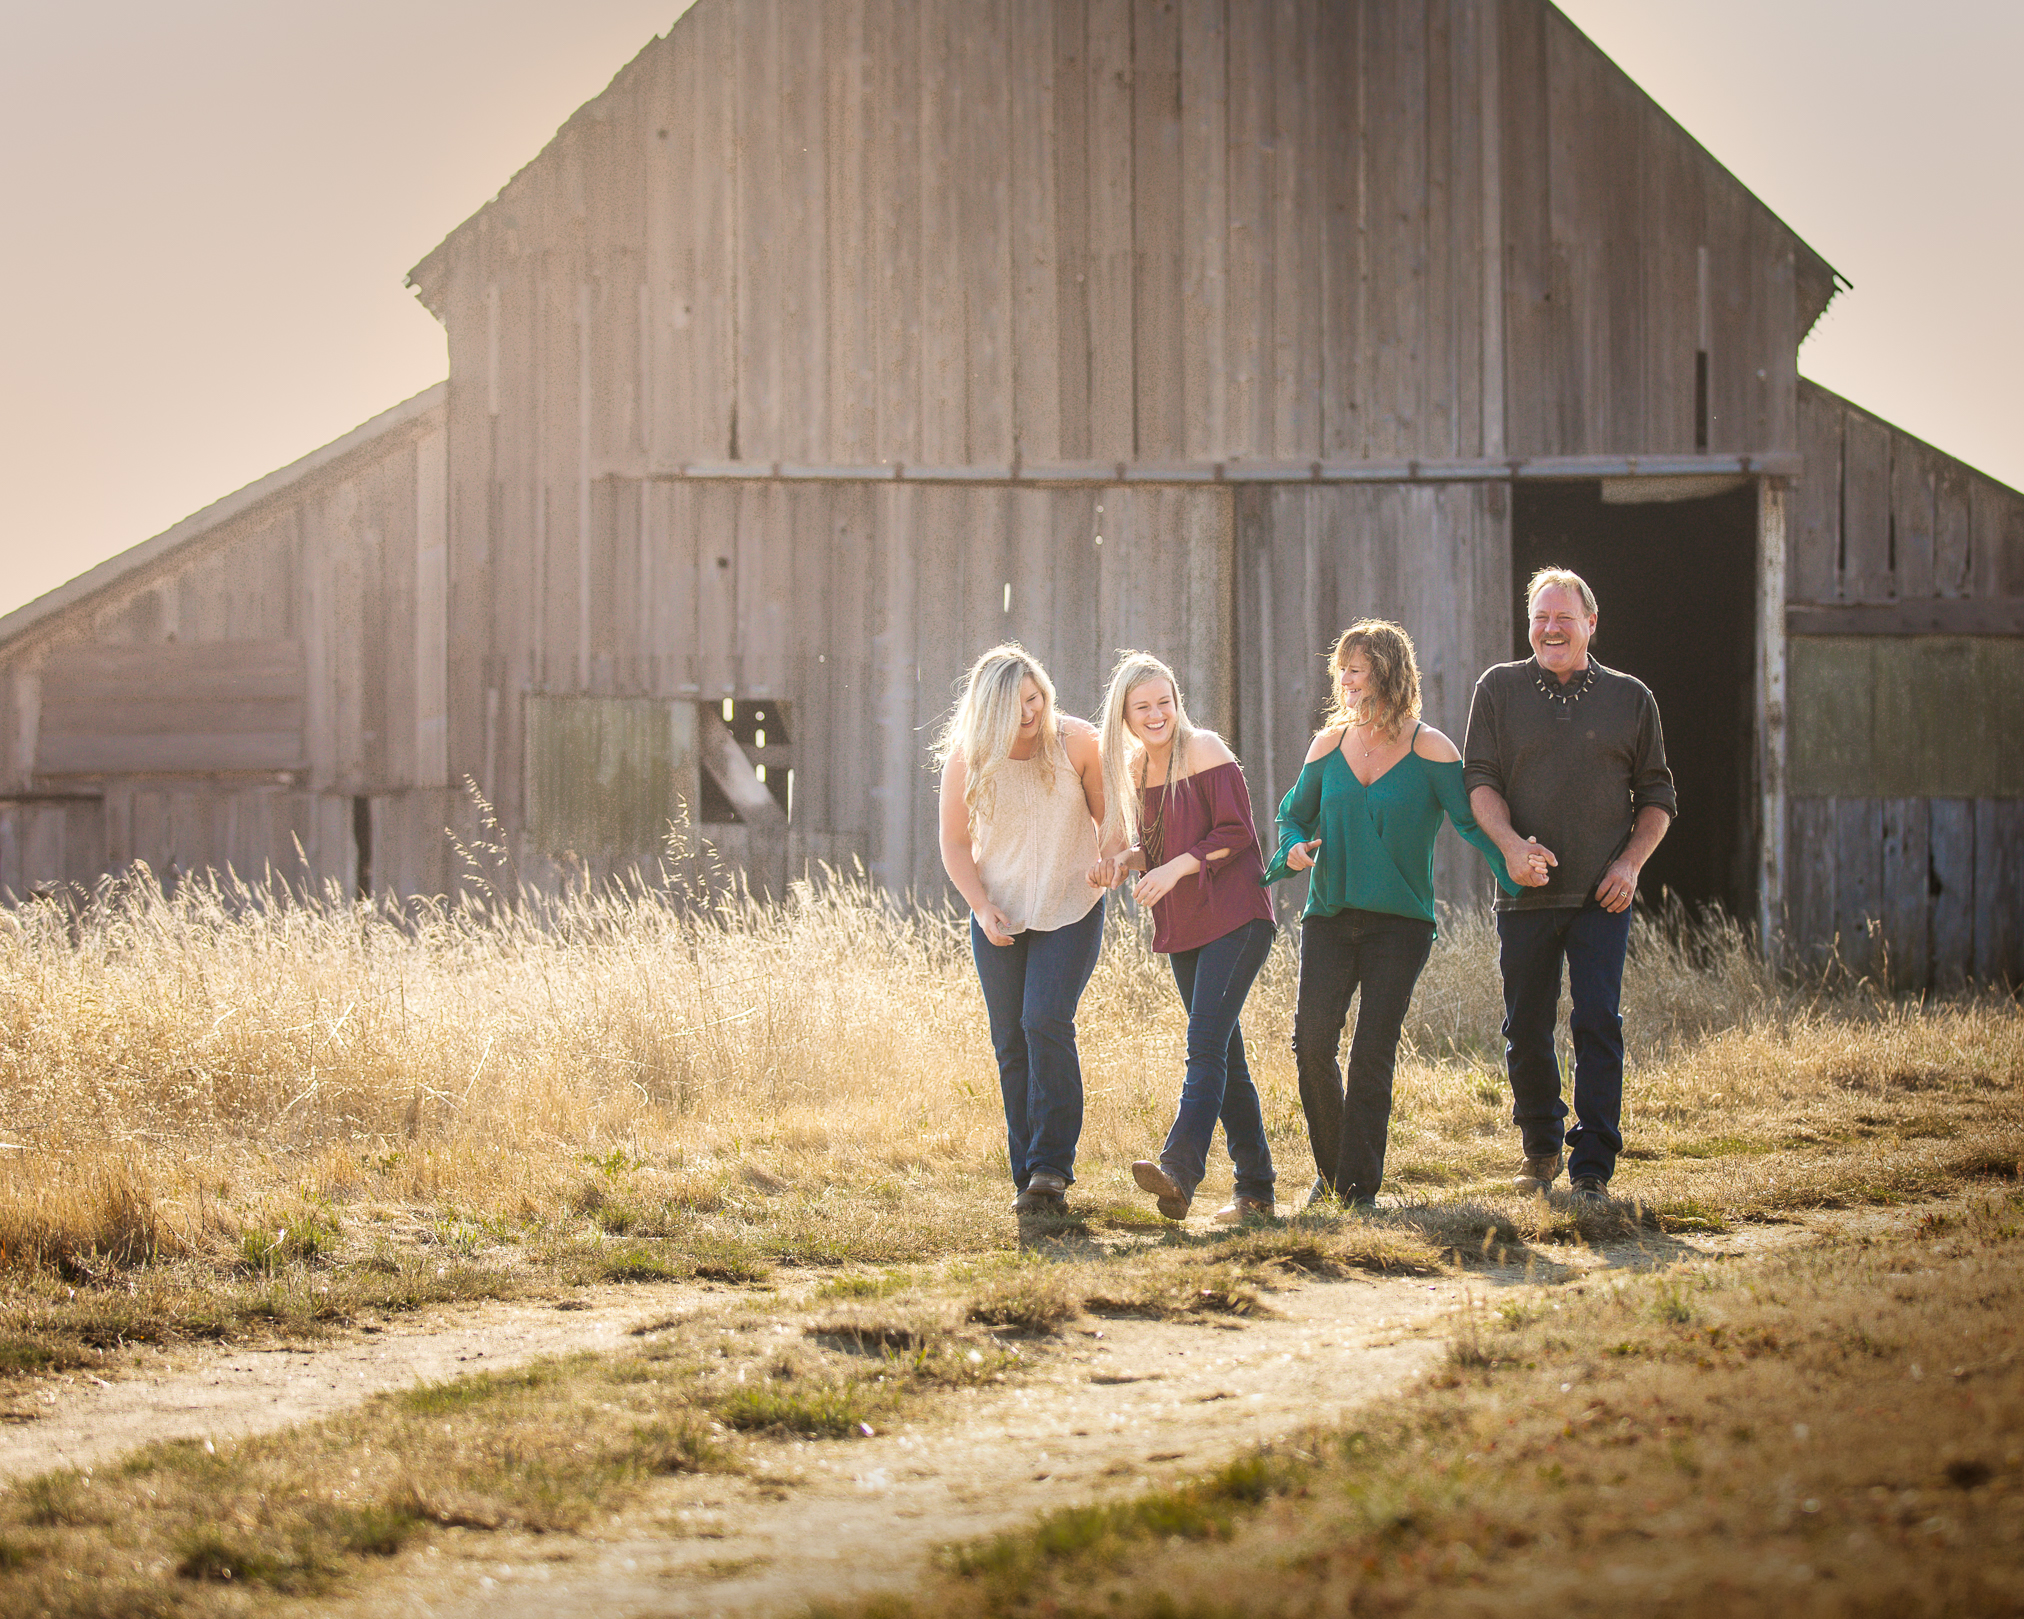 family walking mendocino barn .jpg